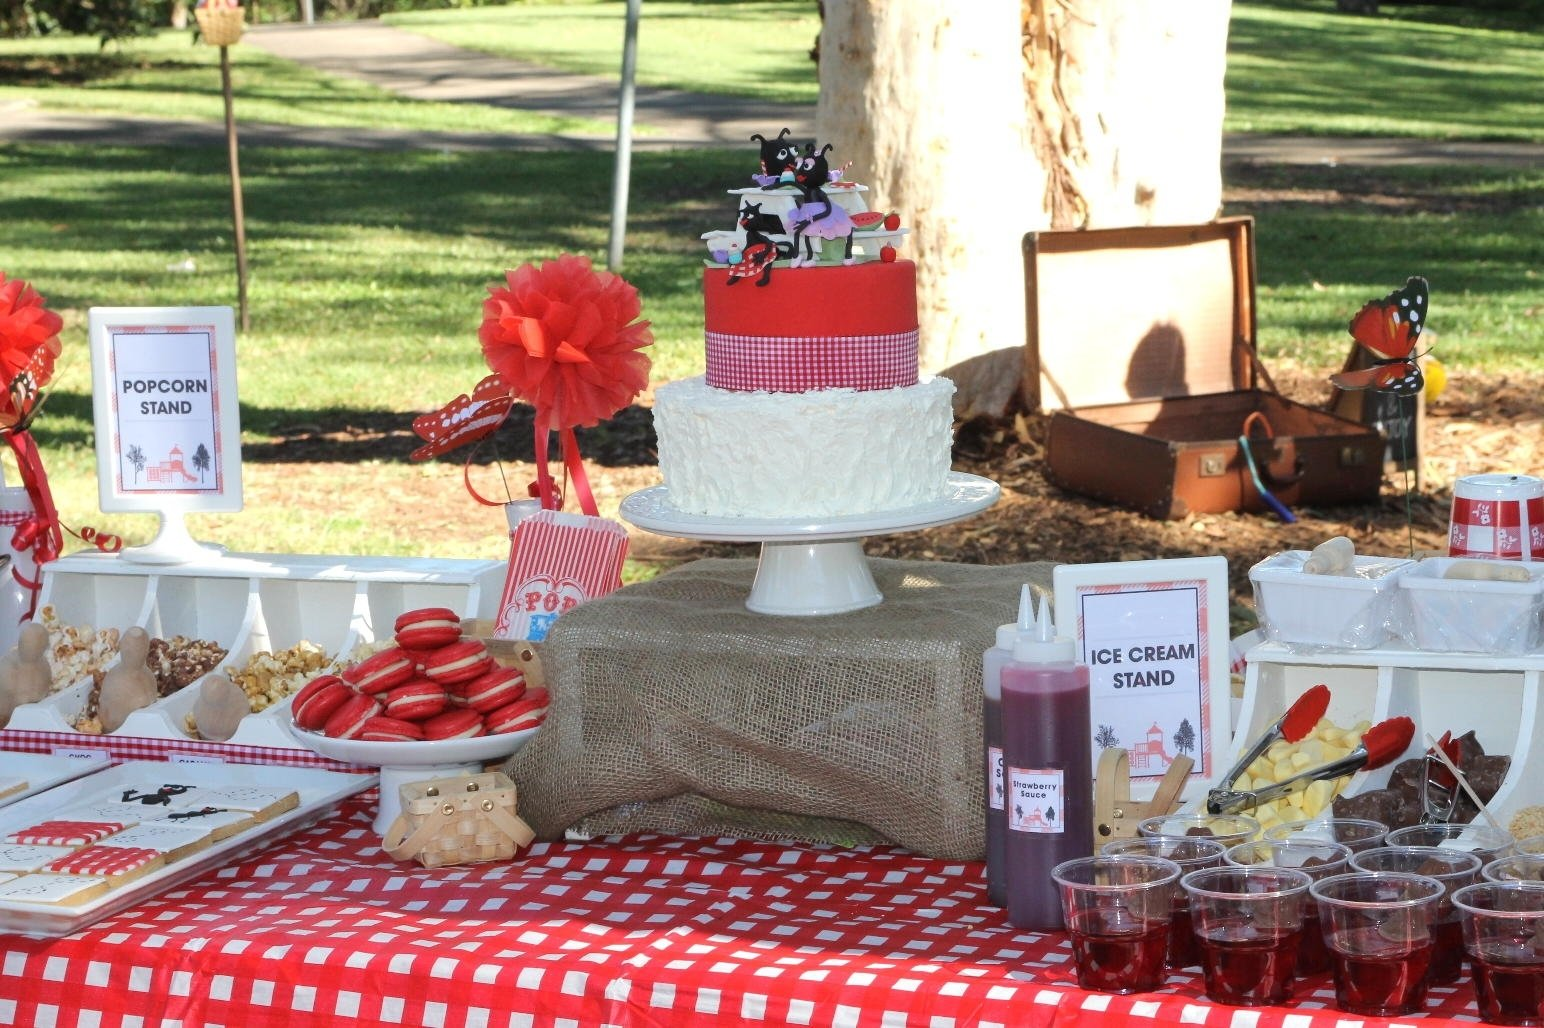 10 Trendy Picnic In The Park Ideas bubble and sweet ant picnic in the park cake and cookies and a